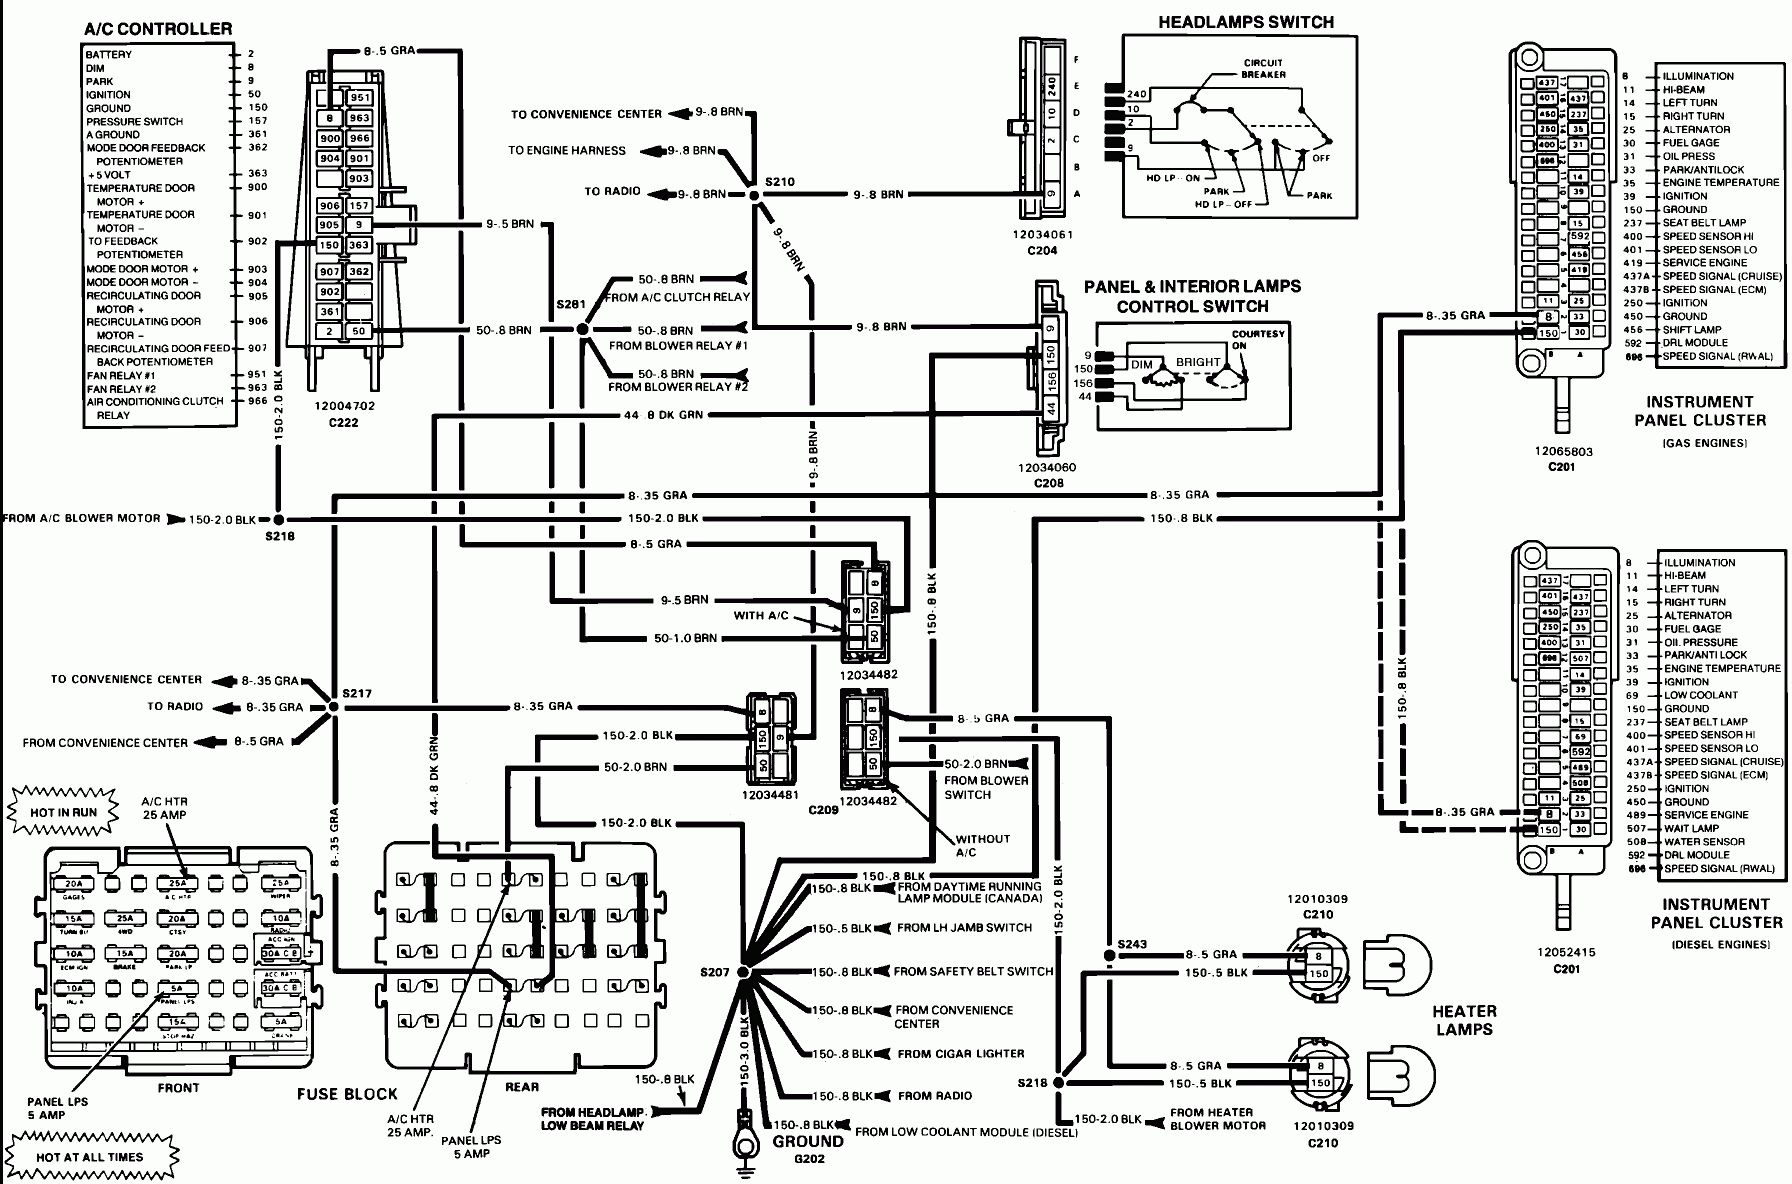 1972 Chevy Truck Wiring Diagram 1971 Chevy Truck Wiring Diagram In 1972 Chevy Truck Wiring Diagram 1985 Chevy Truck S10 Truck 1979 Chevy Truck